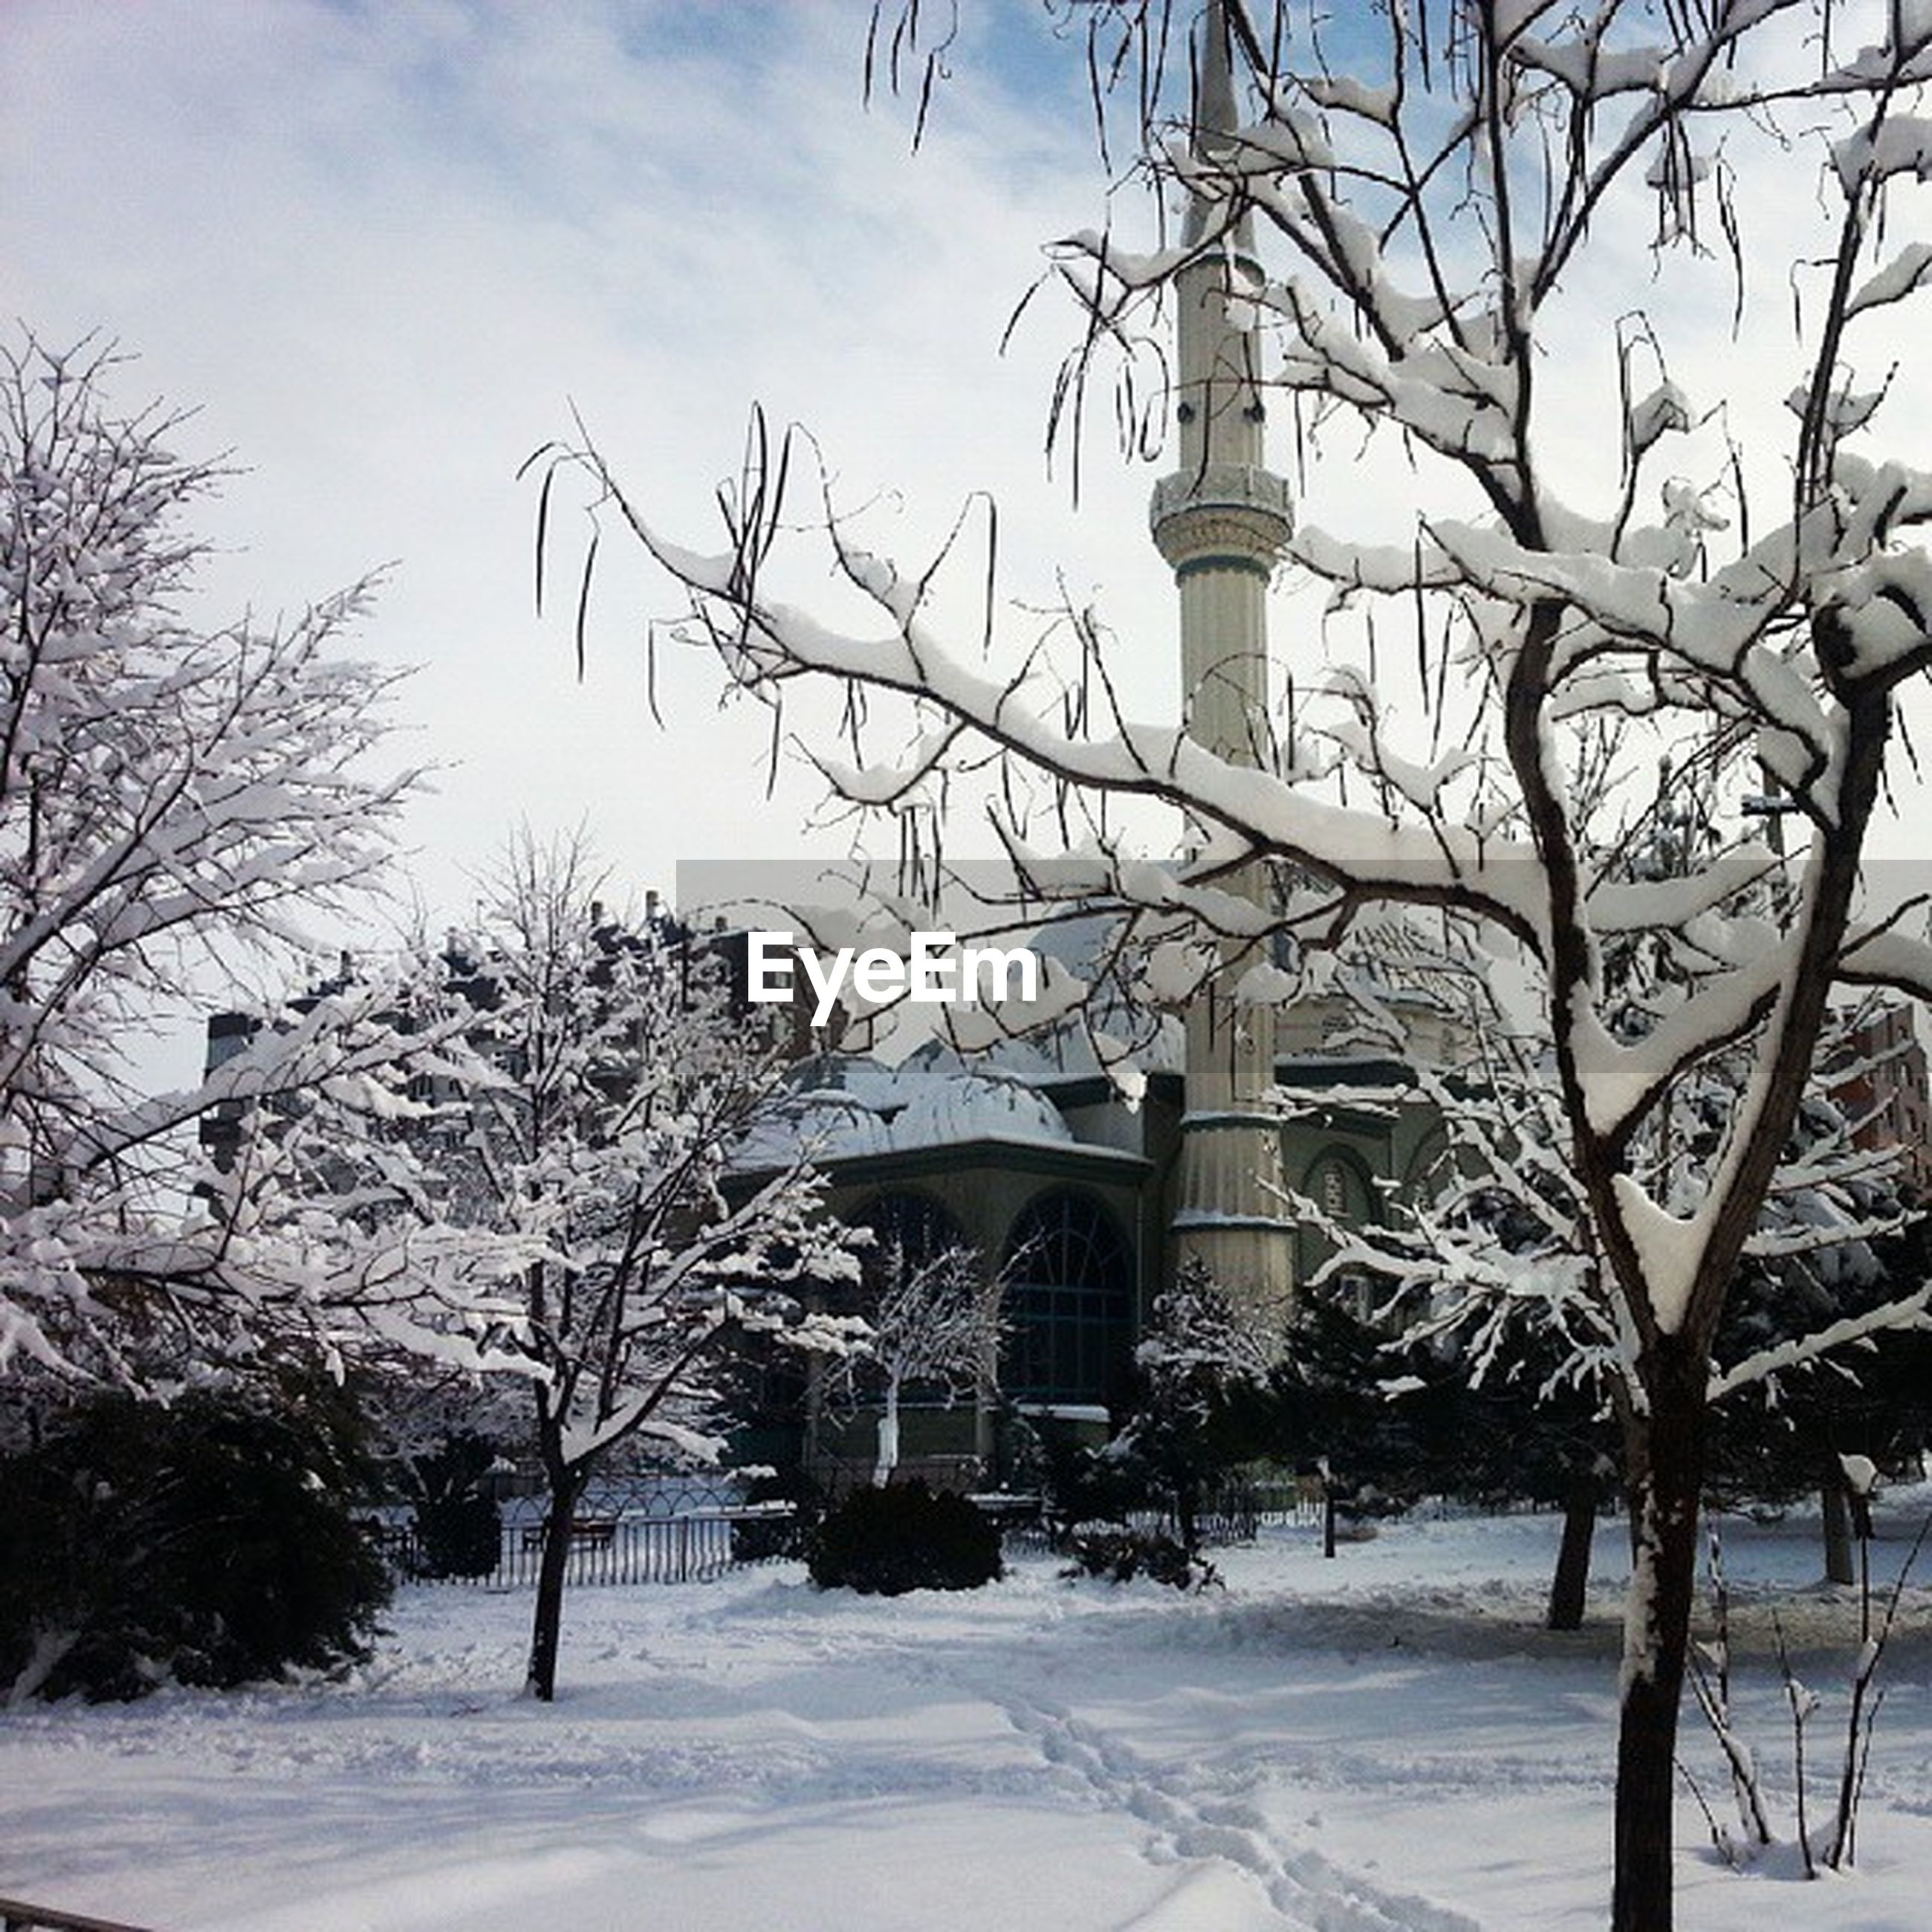 architecture, built structure, building exterior, bare tree, snow, tree, winter, cold temperature, sky, branch, season, covering, house, white color, day, weather, outdoors, cloud - sky, nature, church